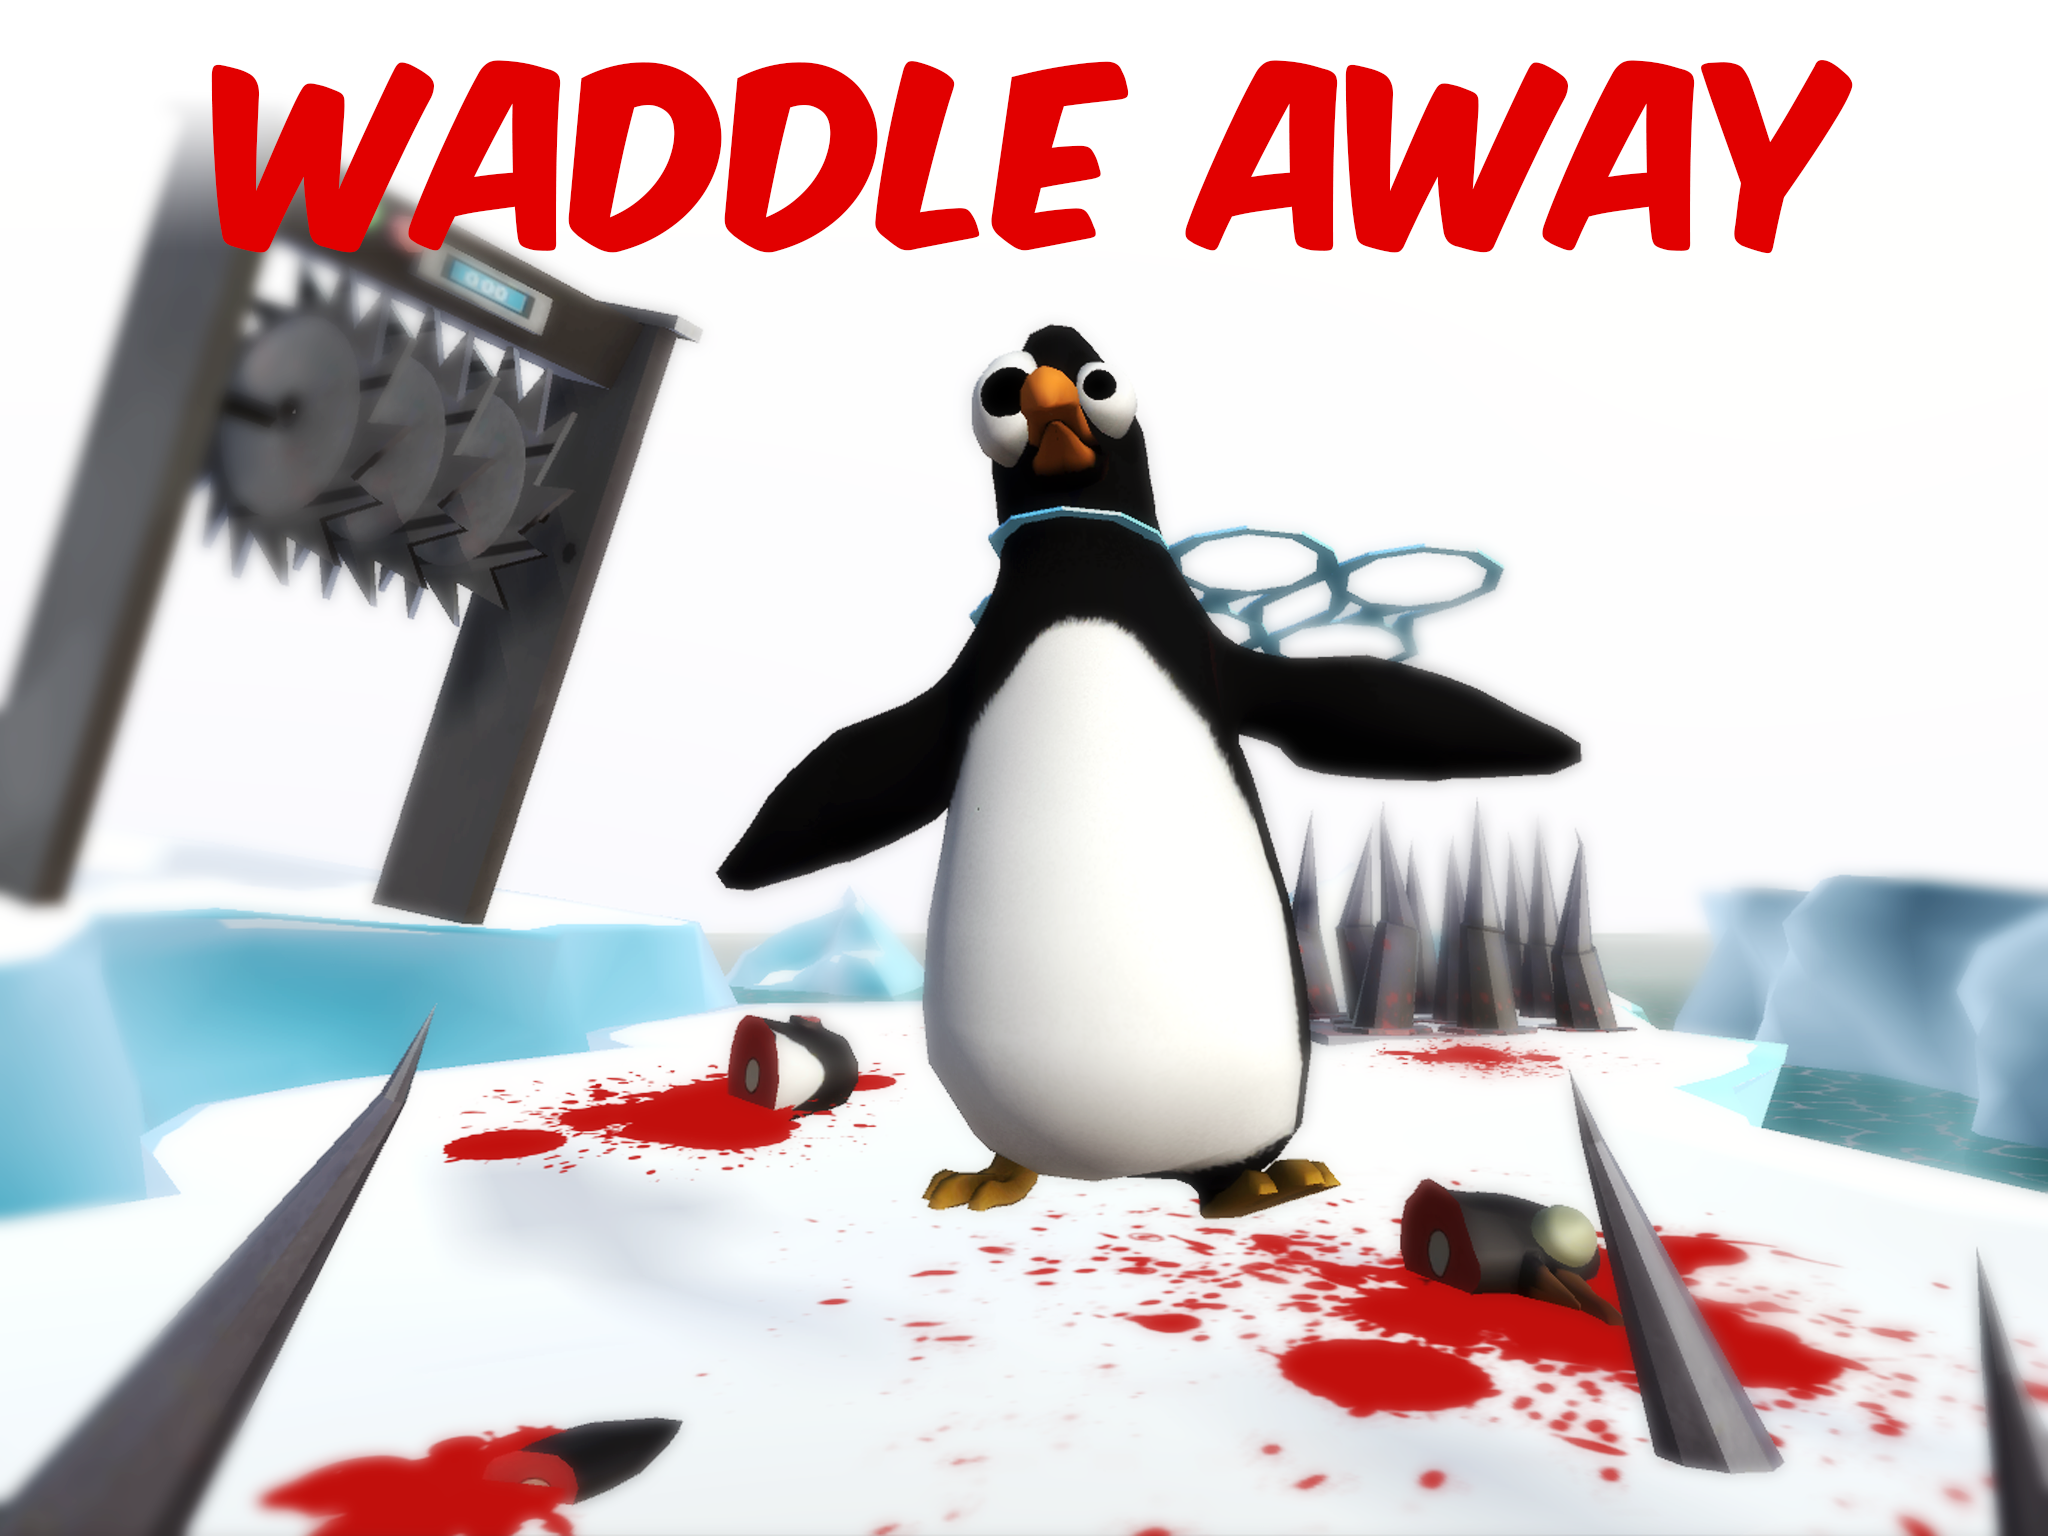 Level Designer on Waddle Away